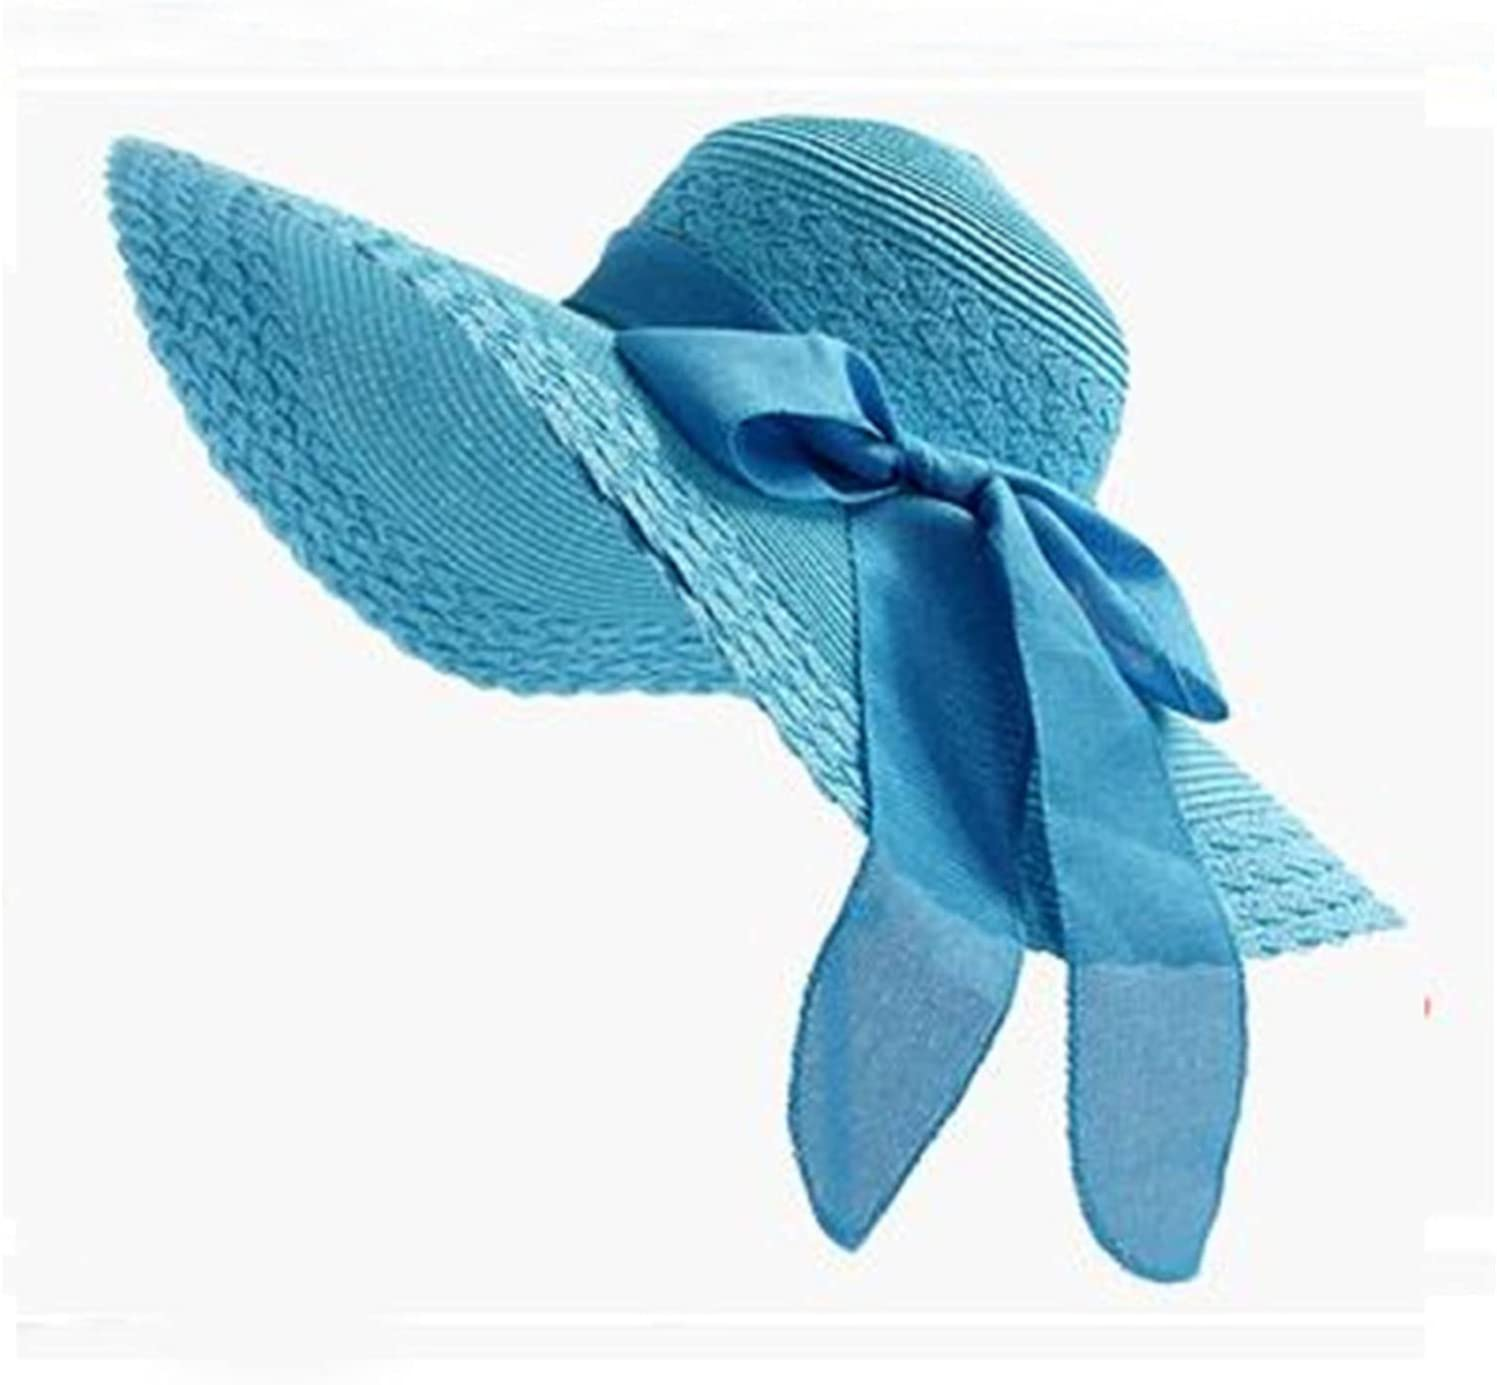 CHENGCHAO Sun hat trust New Korea Style Hats Complete Free Shipping Summer Soli Women Bow Big